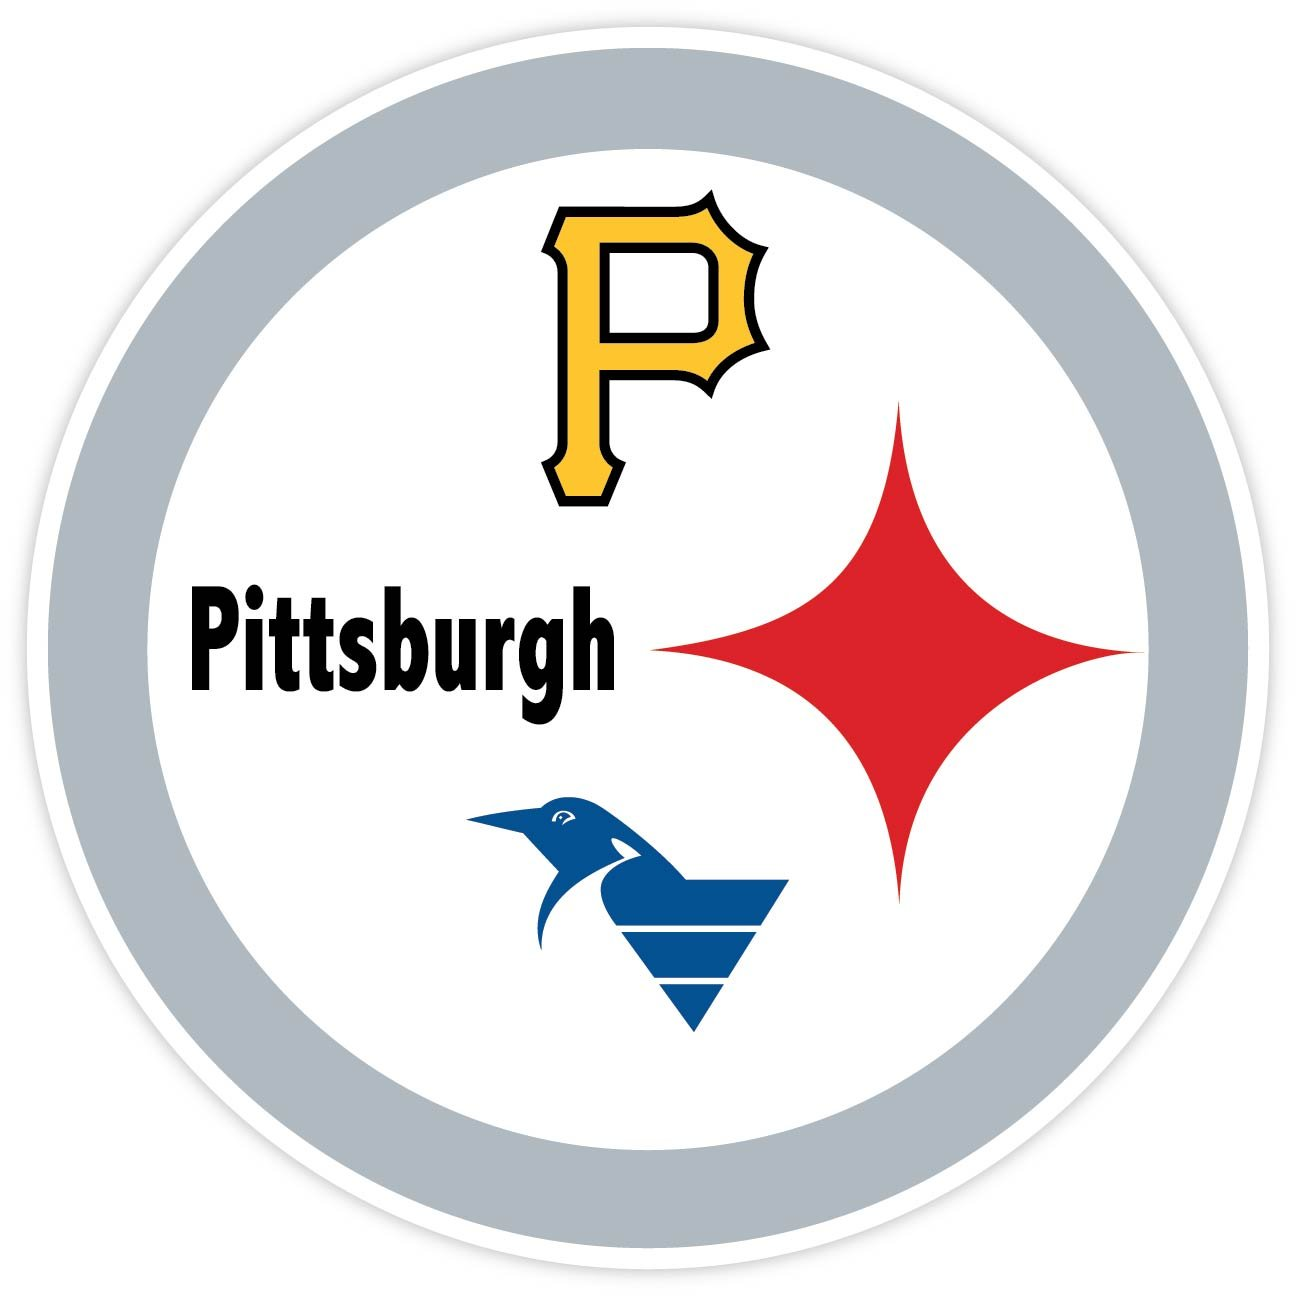 Steelers Penguins Pirates Decal Steelers Penguins Pirates